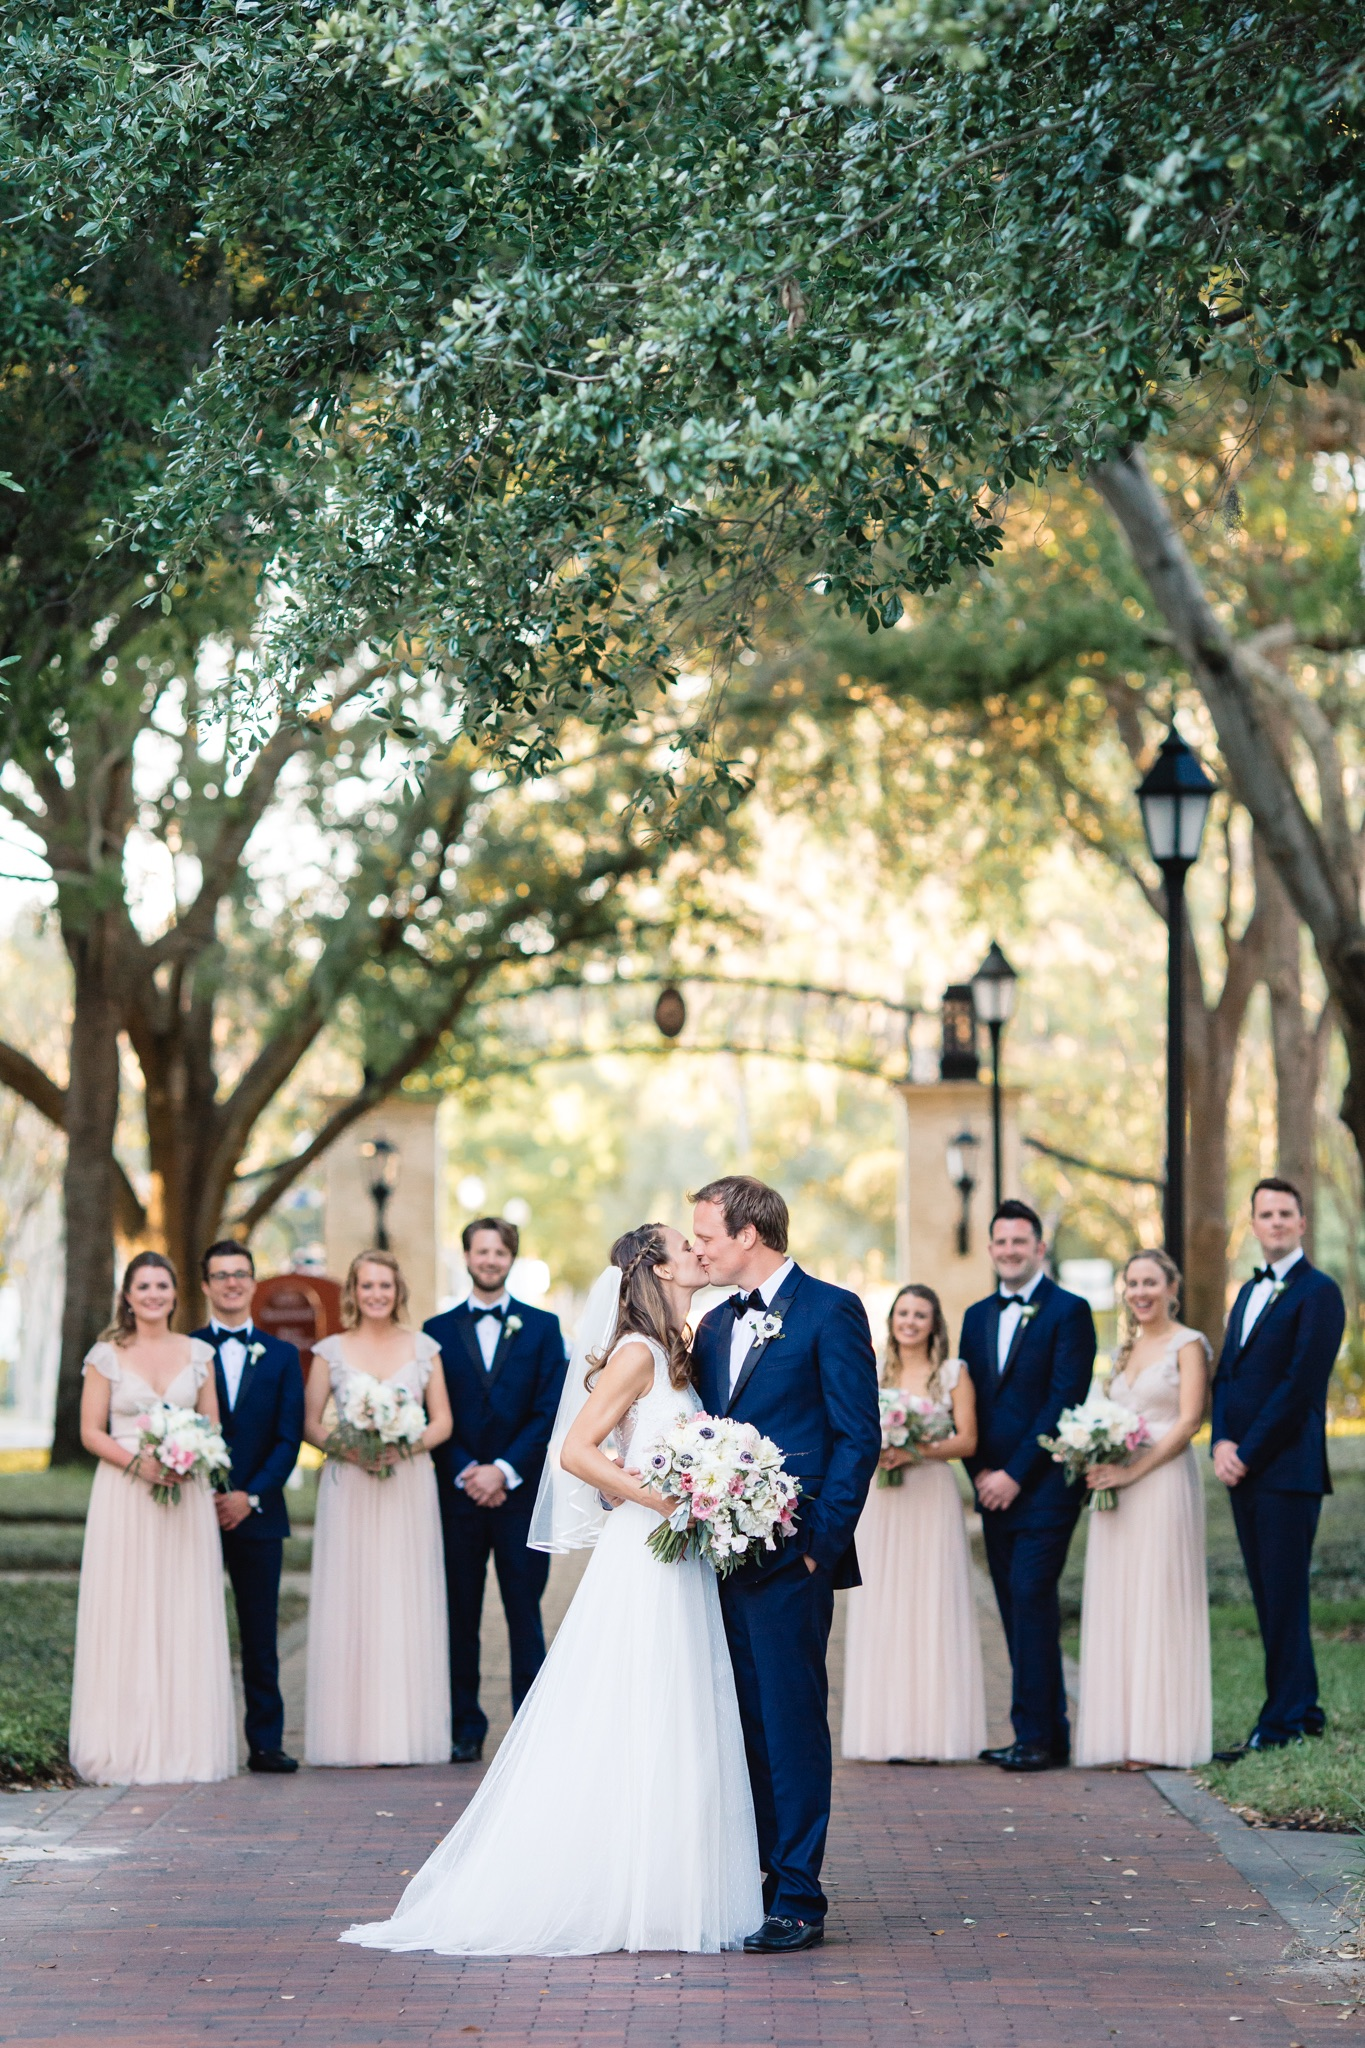 Wedding Party at the Rollins College Campus